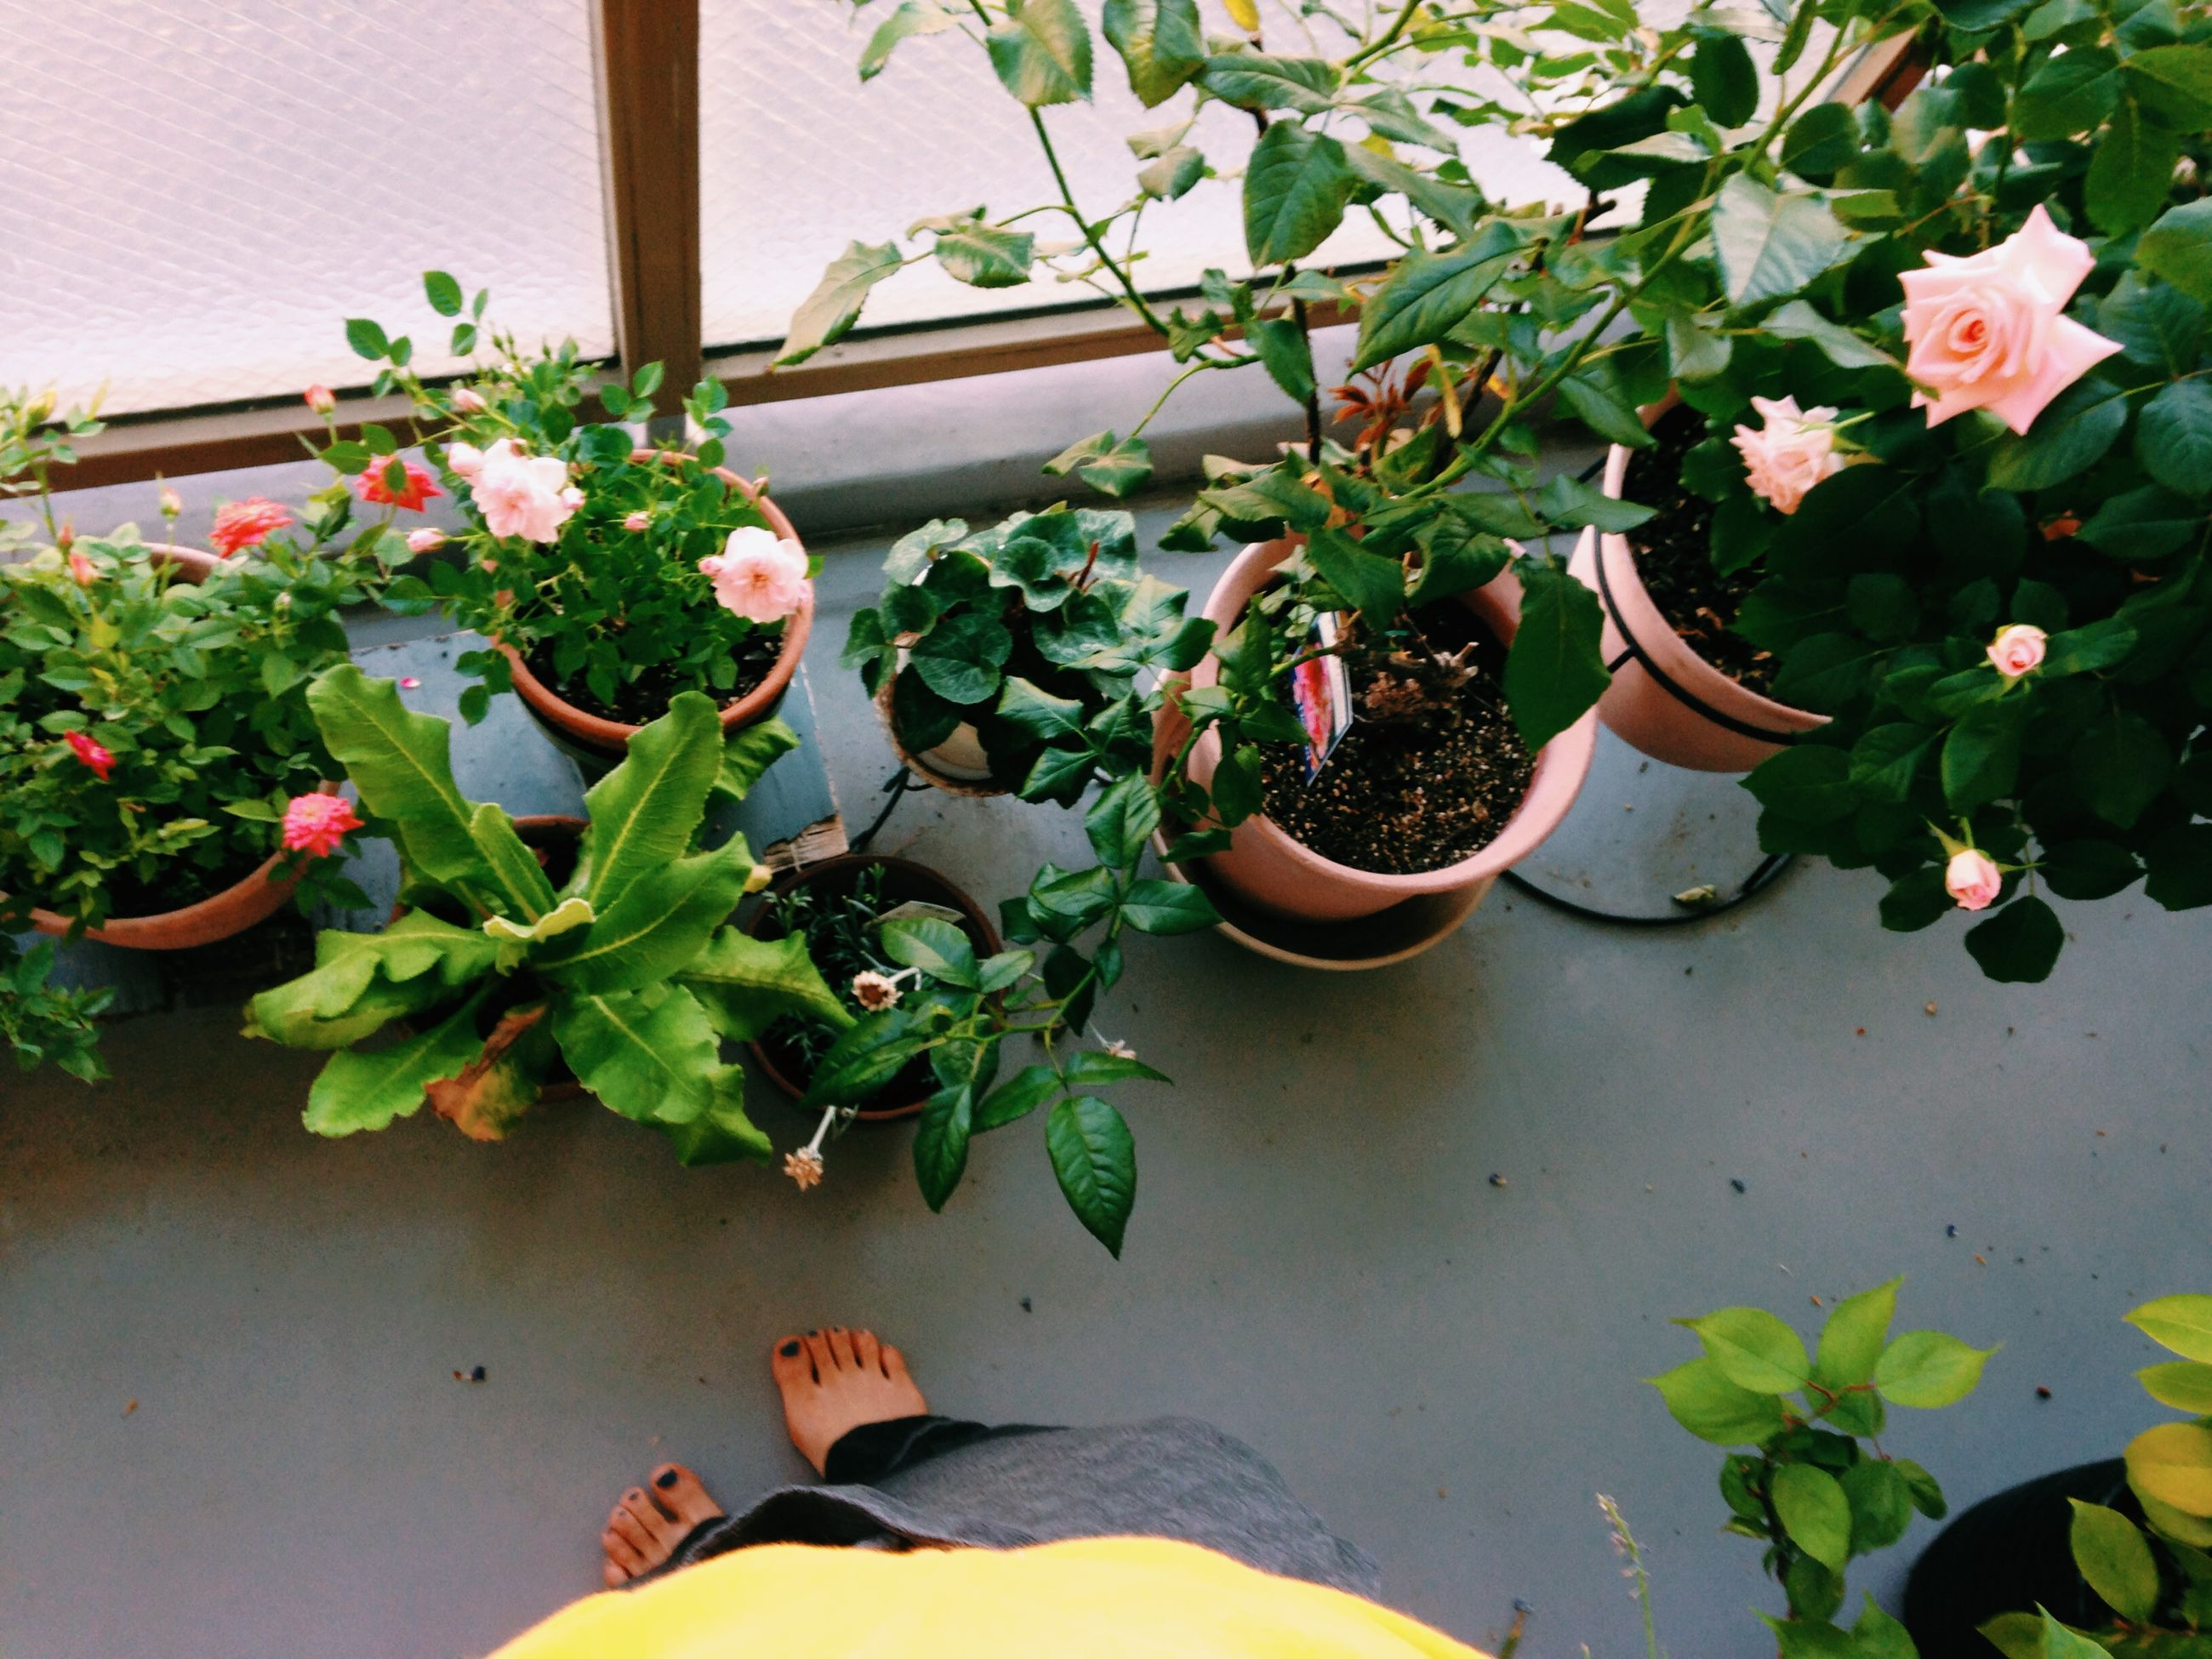 leaf, plant, potted plant, growth, indoors, flower, wall - building feature, high angle view, green color, nature, no people, built structure, wall, day, front or back yard, freshness, fragility, pot plant, flower pot, decoration